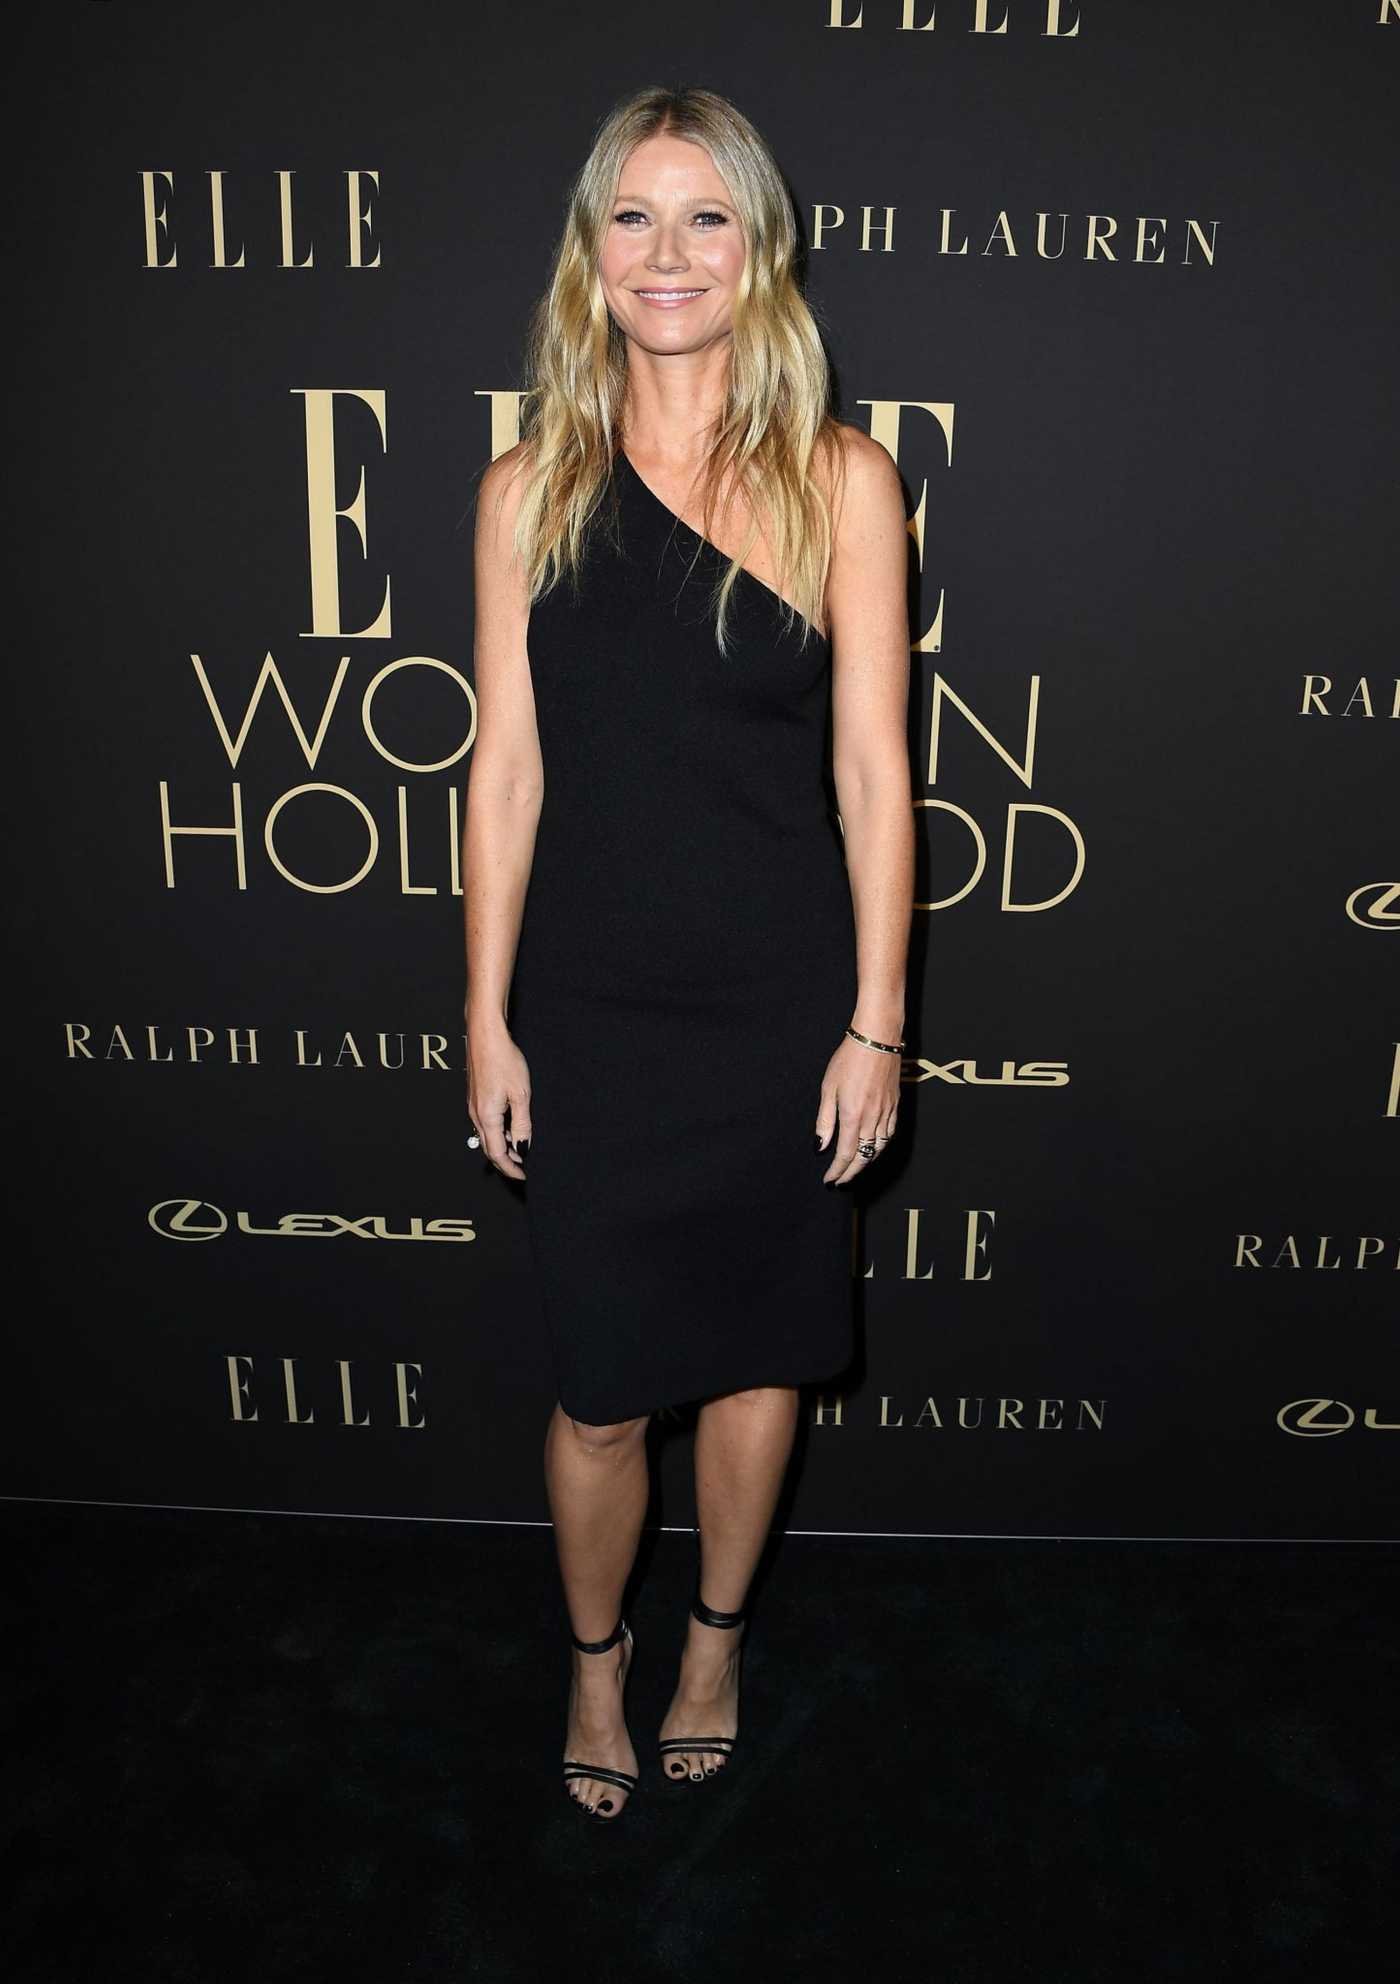 Gwyneth Paltrow Attends the 26th Annual Elle Women in Hollywood Celebration in Beverly Hills 10/14/2019